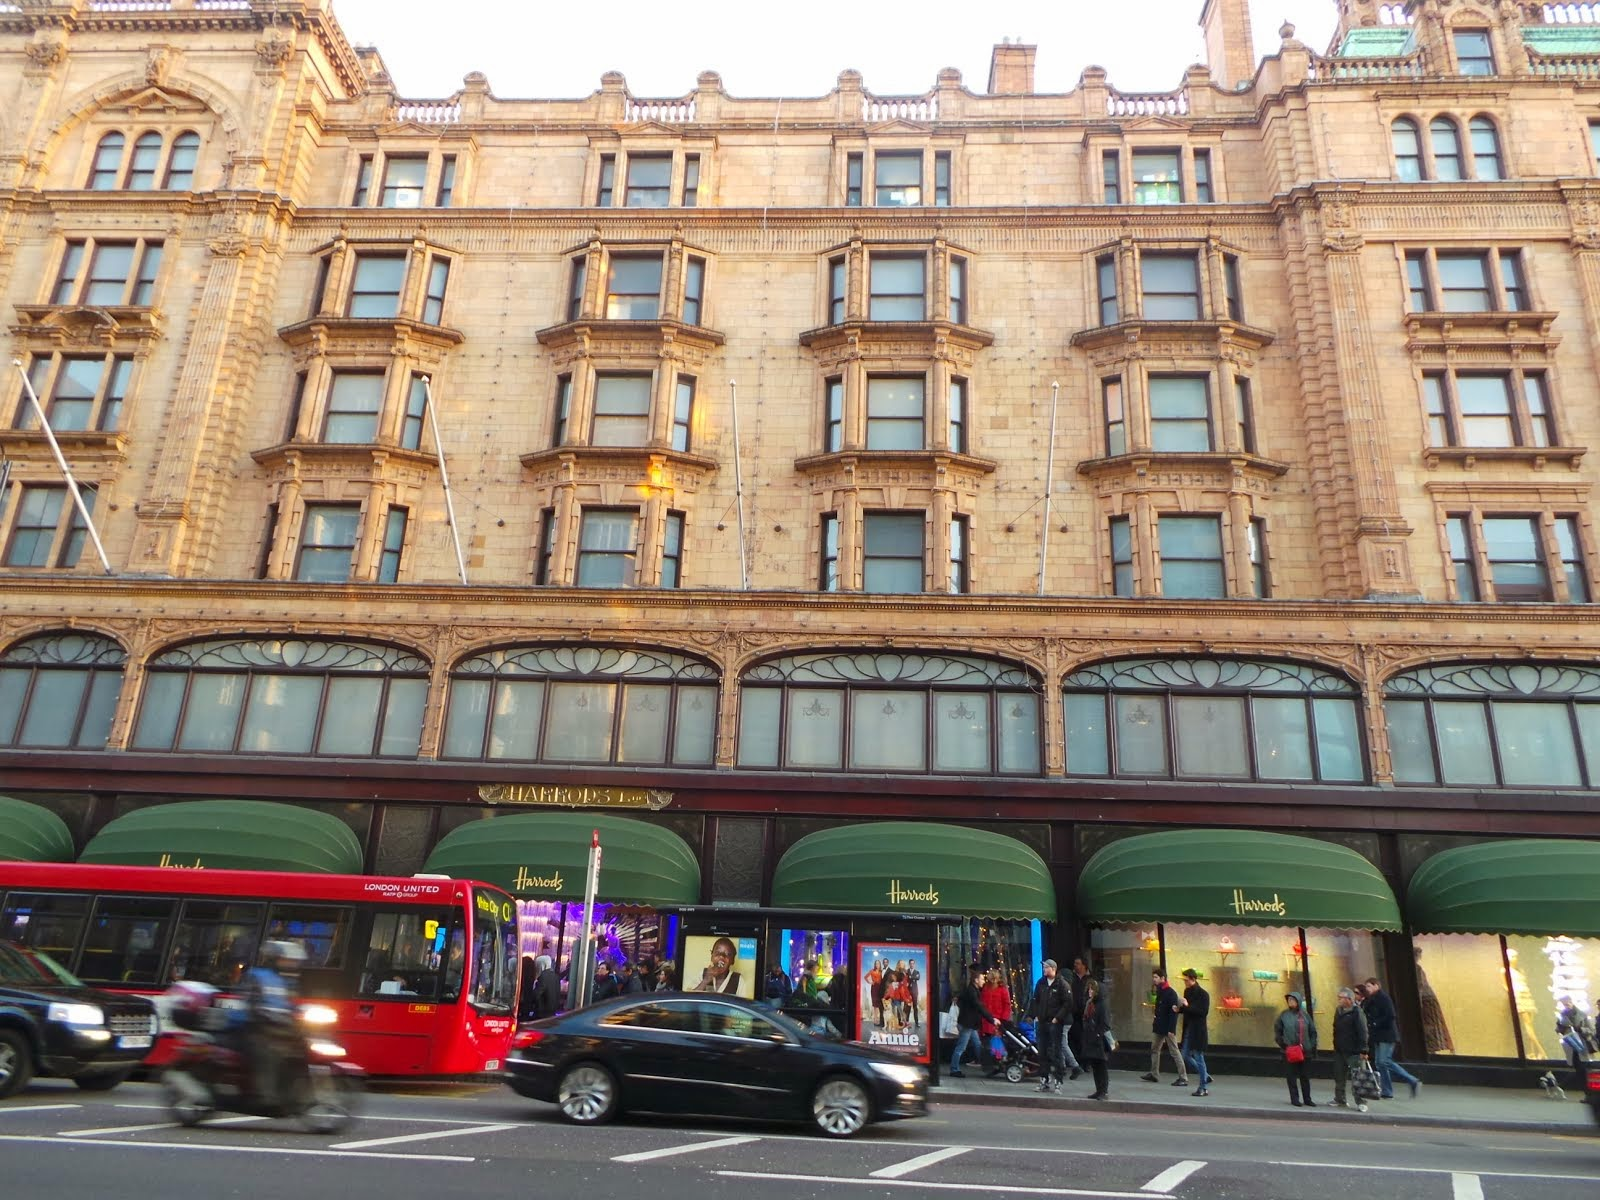 London Harrods at Knightbridge